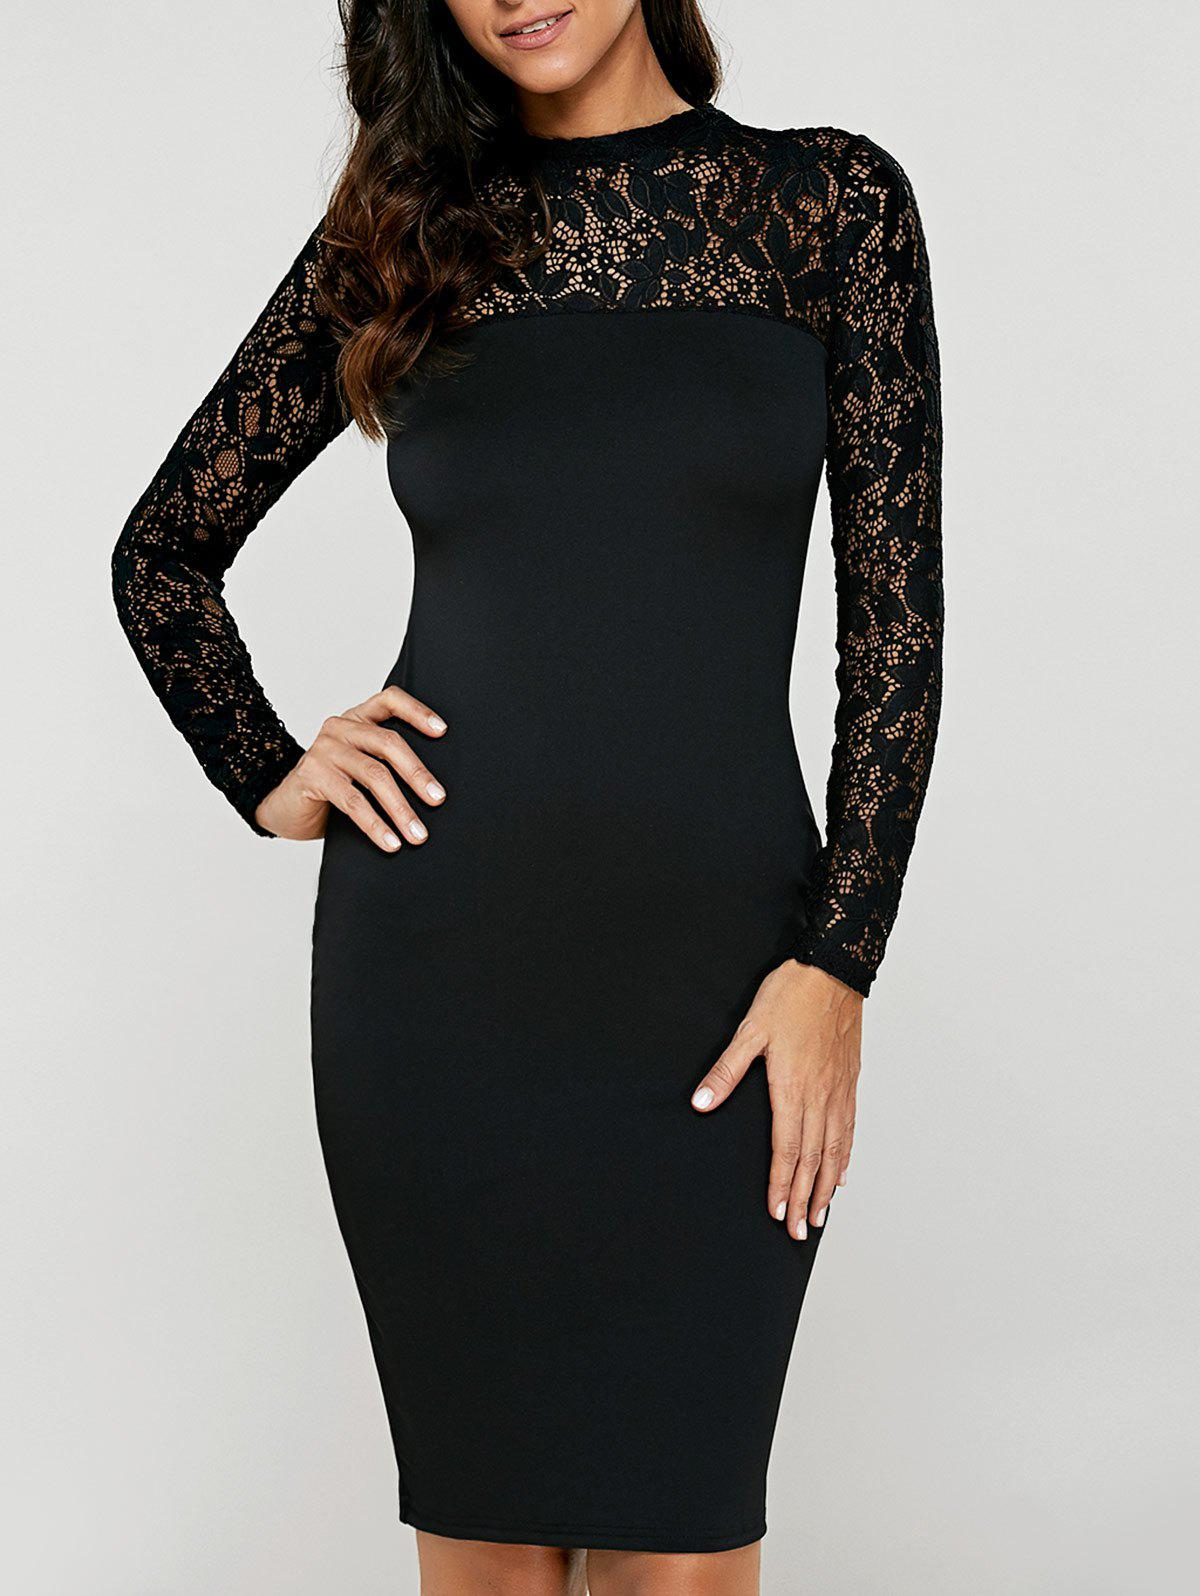 Lace Insert Long Sleeve Pencil Dress - BLACK M